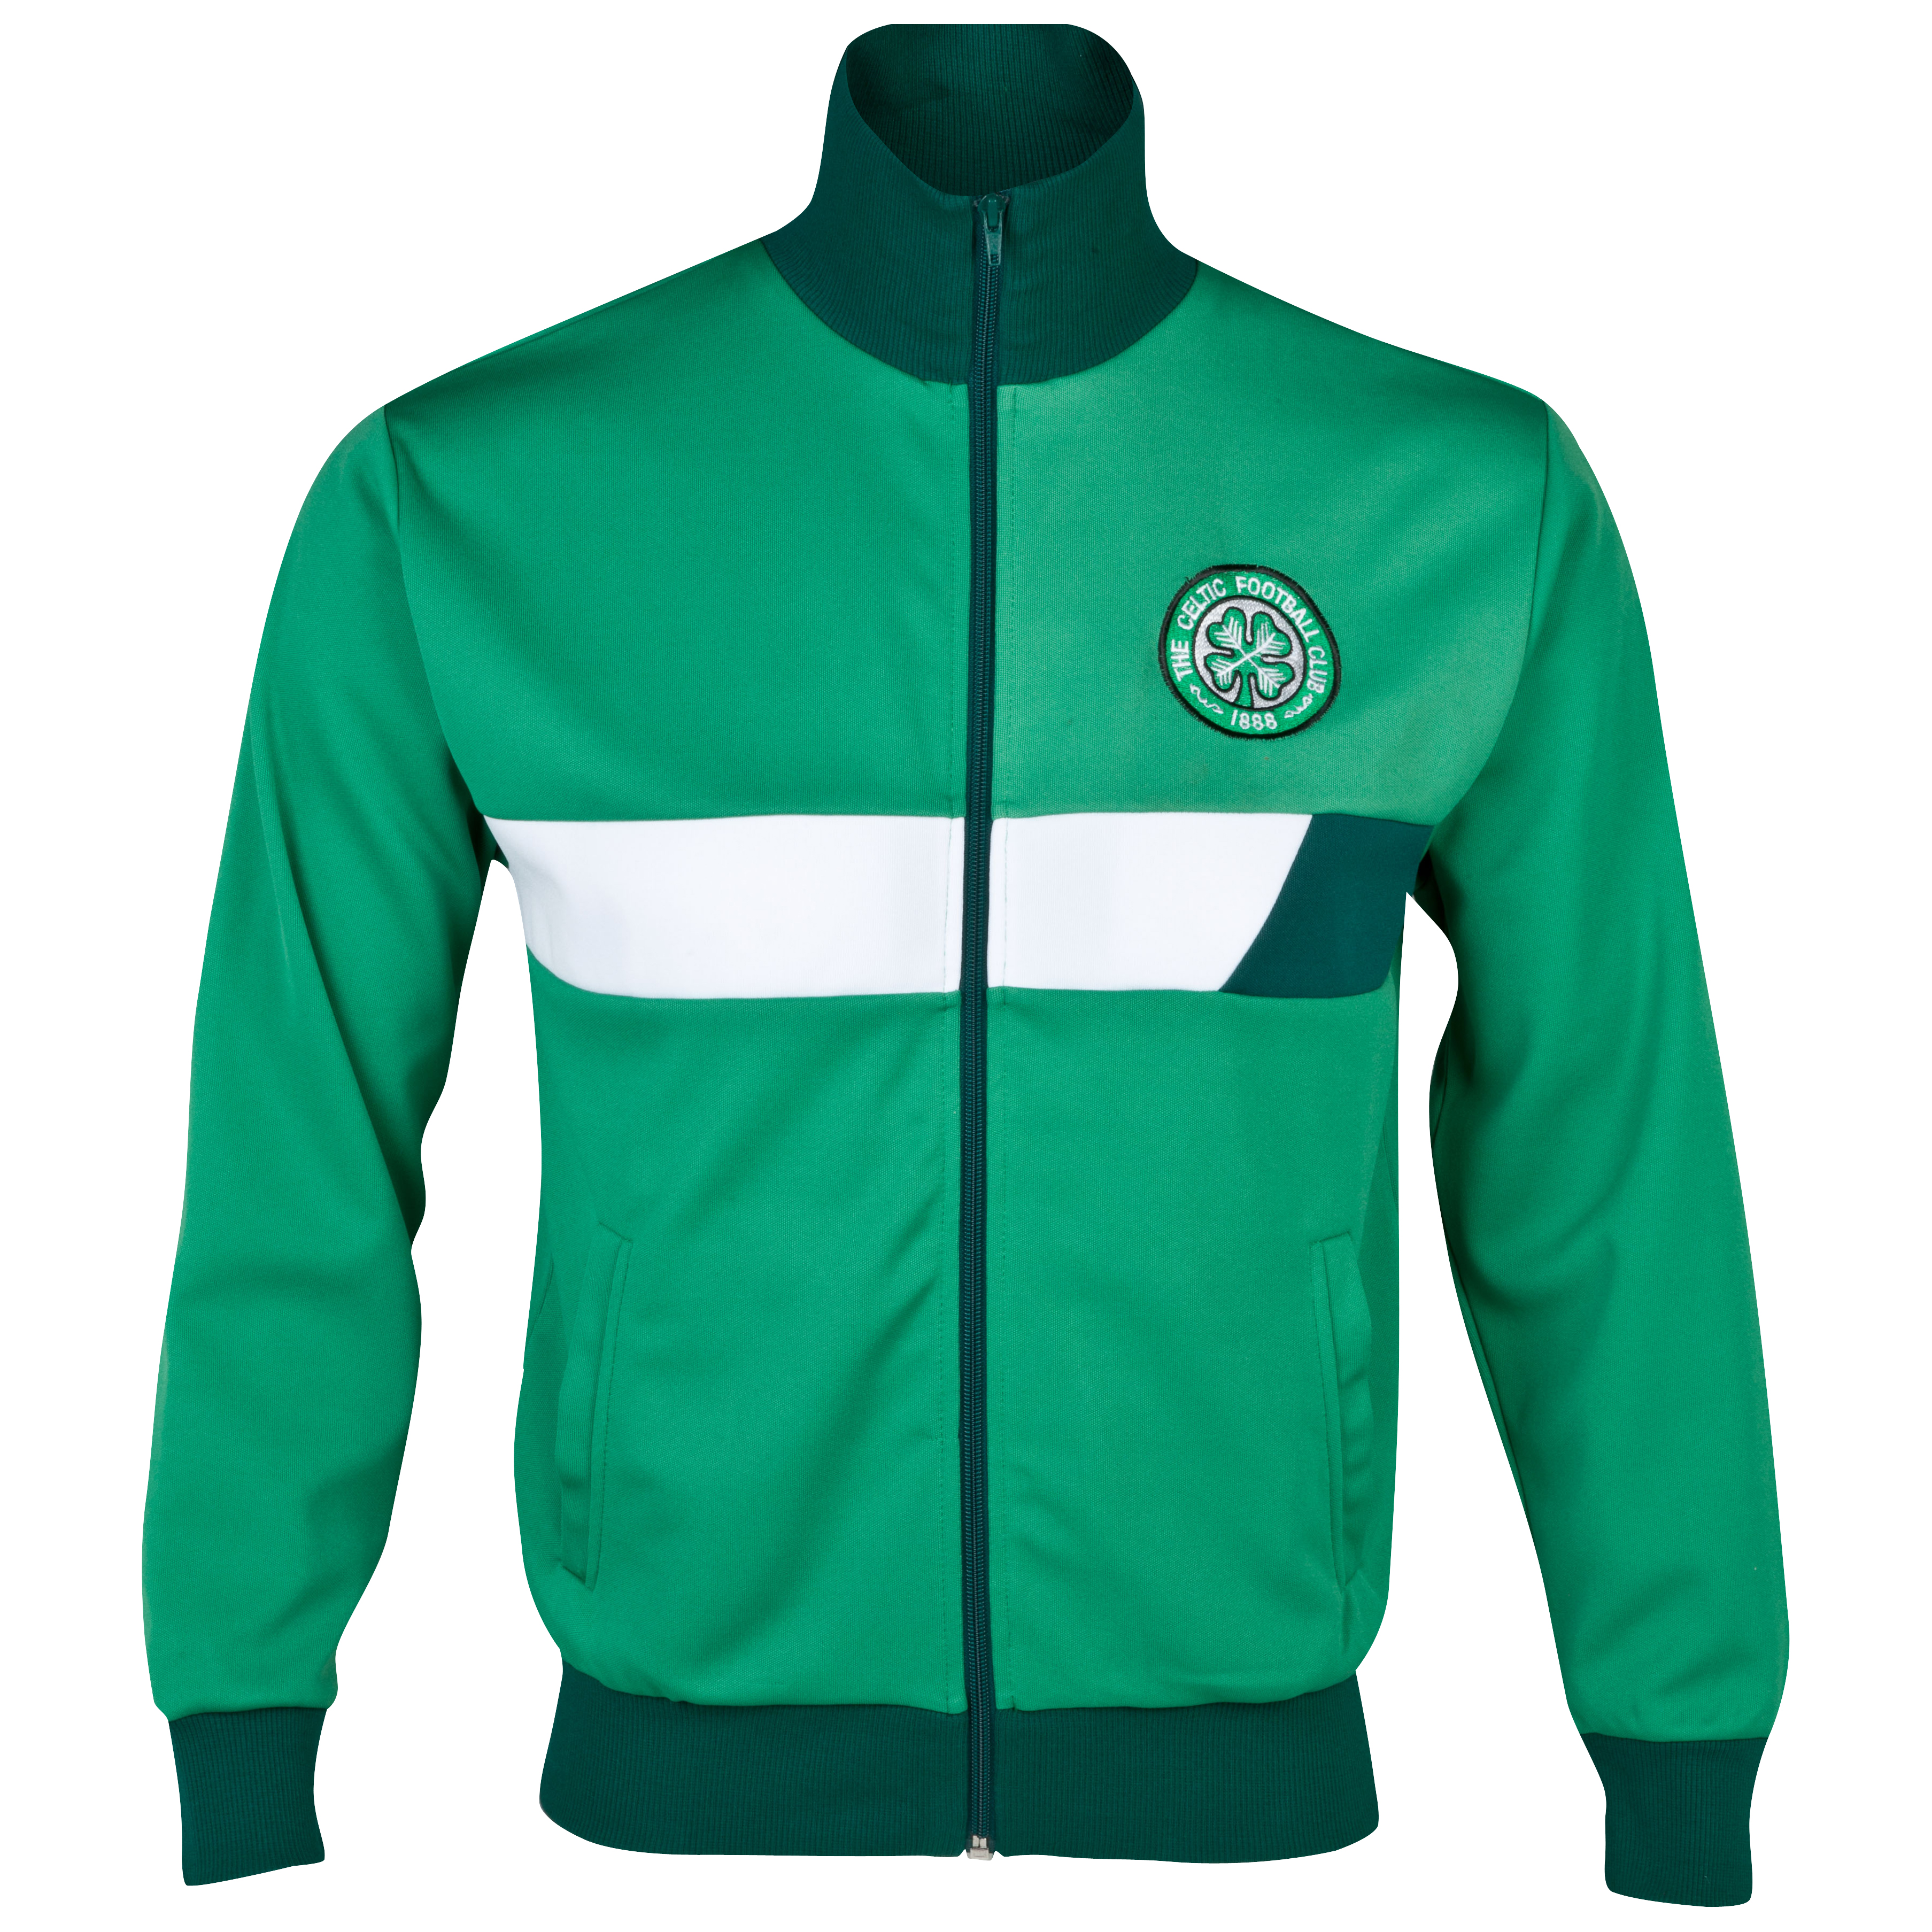 Celtic 1986 Track Jacket